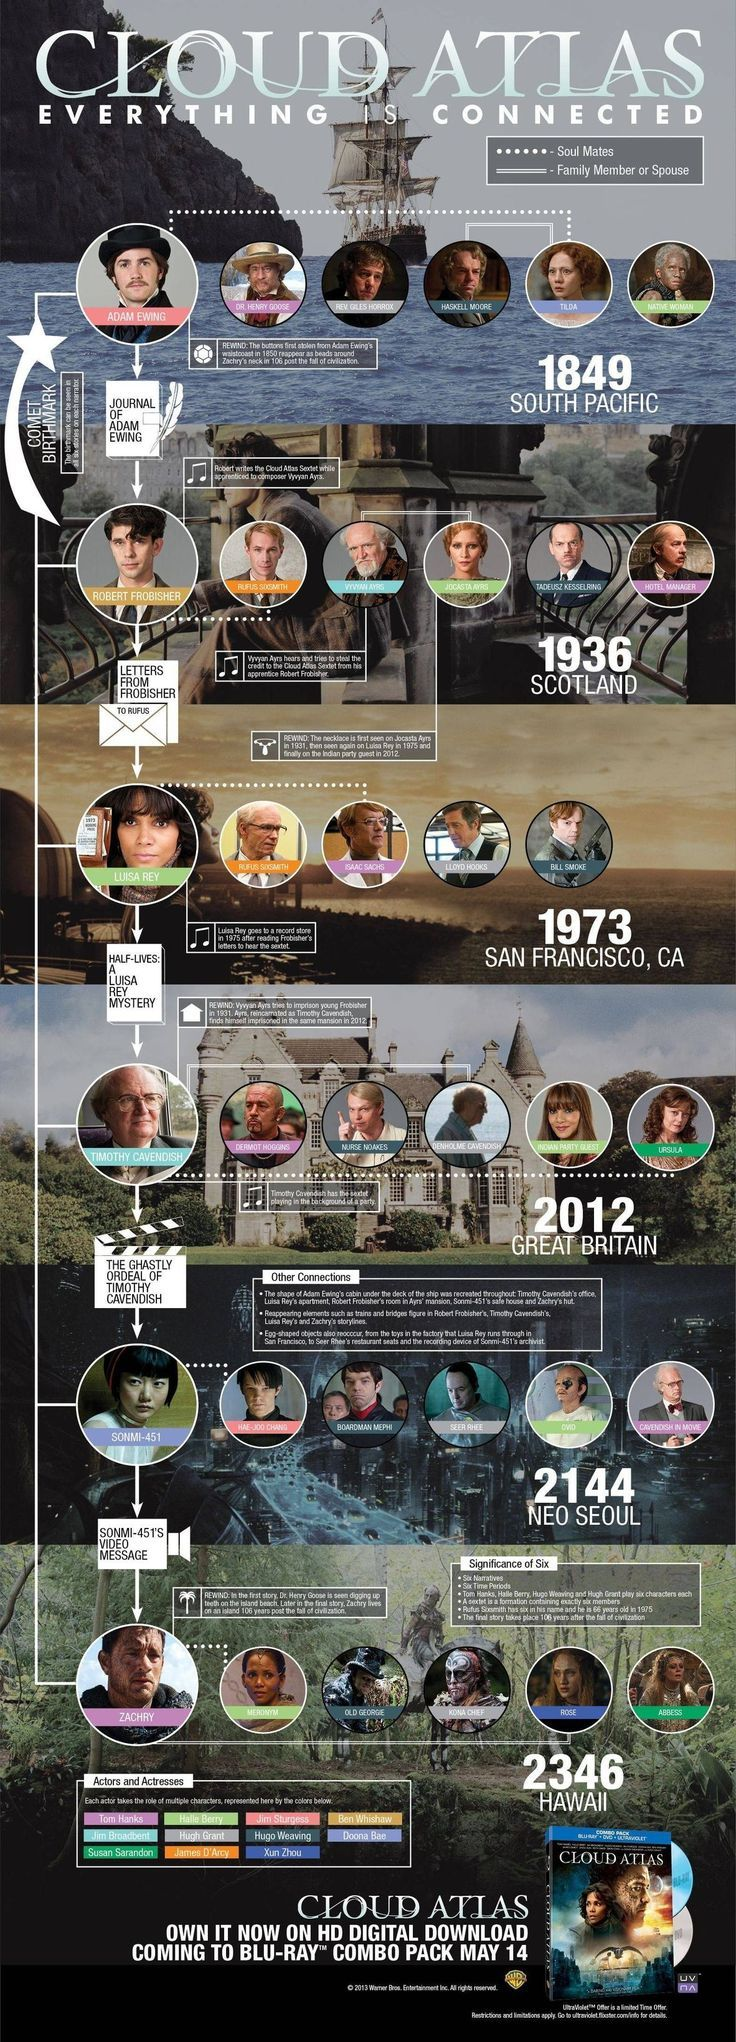 Cloud Atlas storyline connection graphic | Things for Geeks